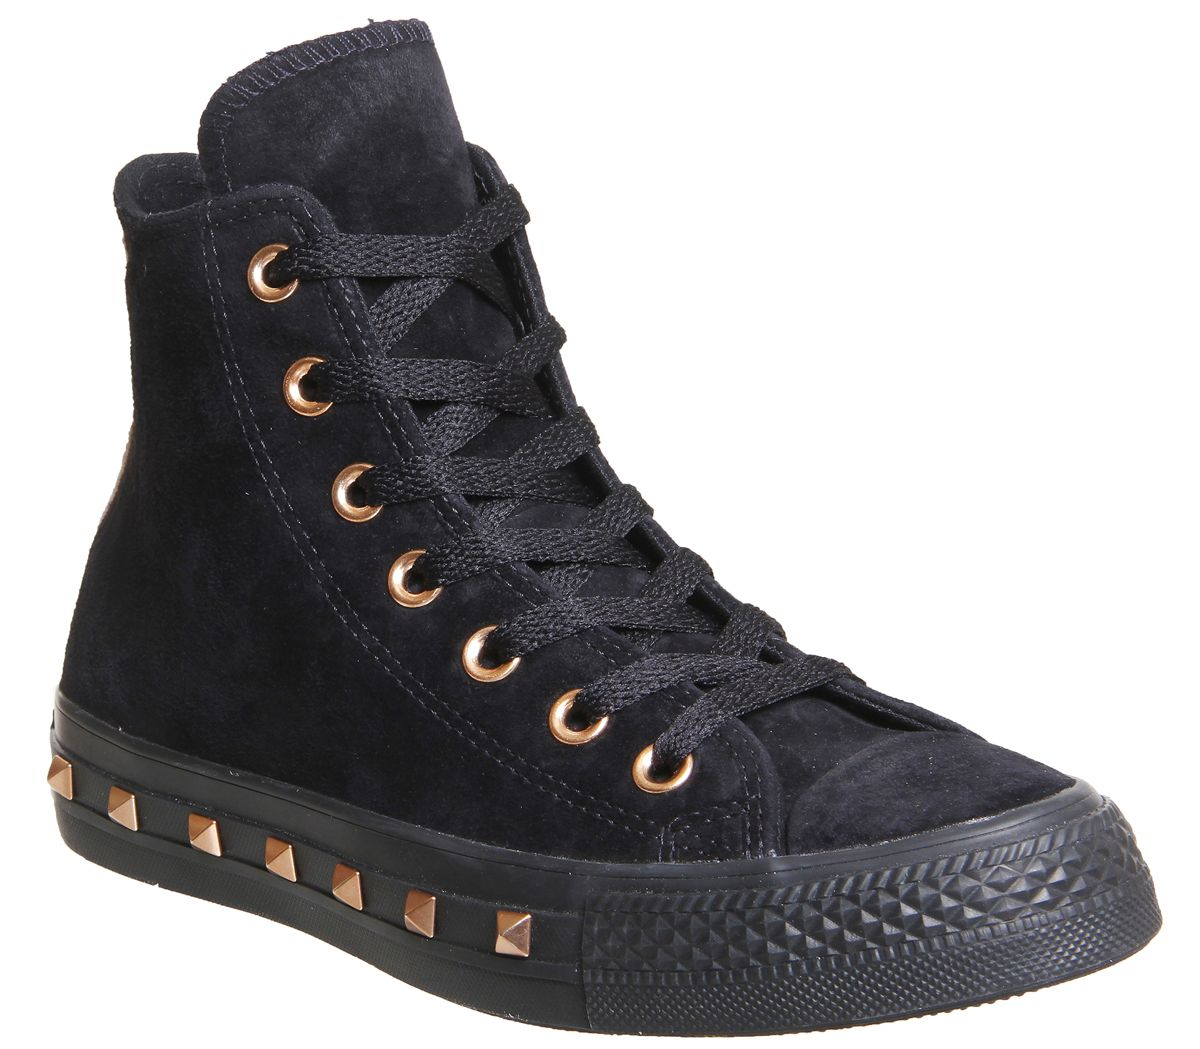 Converse All Star Hi Leather Trainers, Multi-Coloured